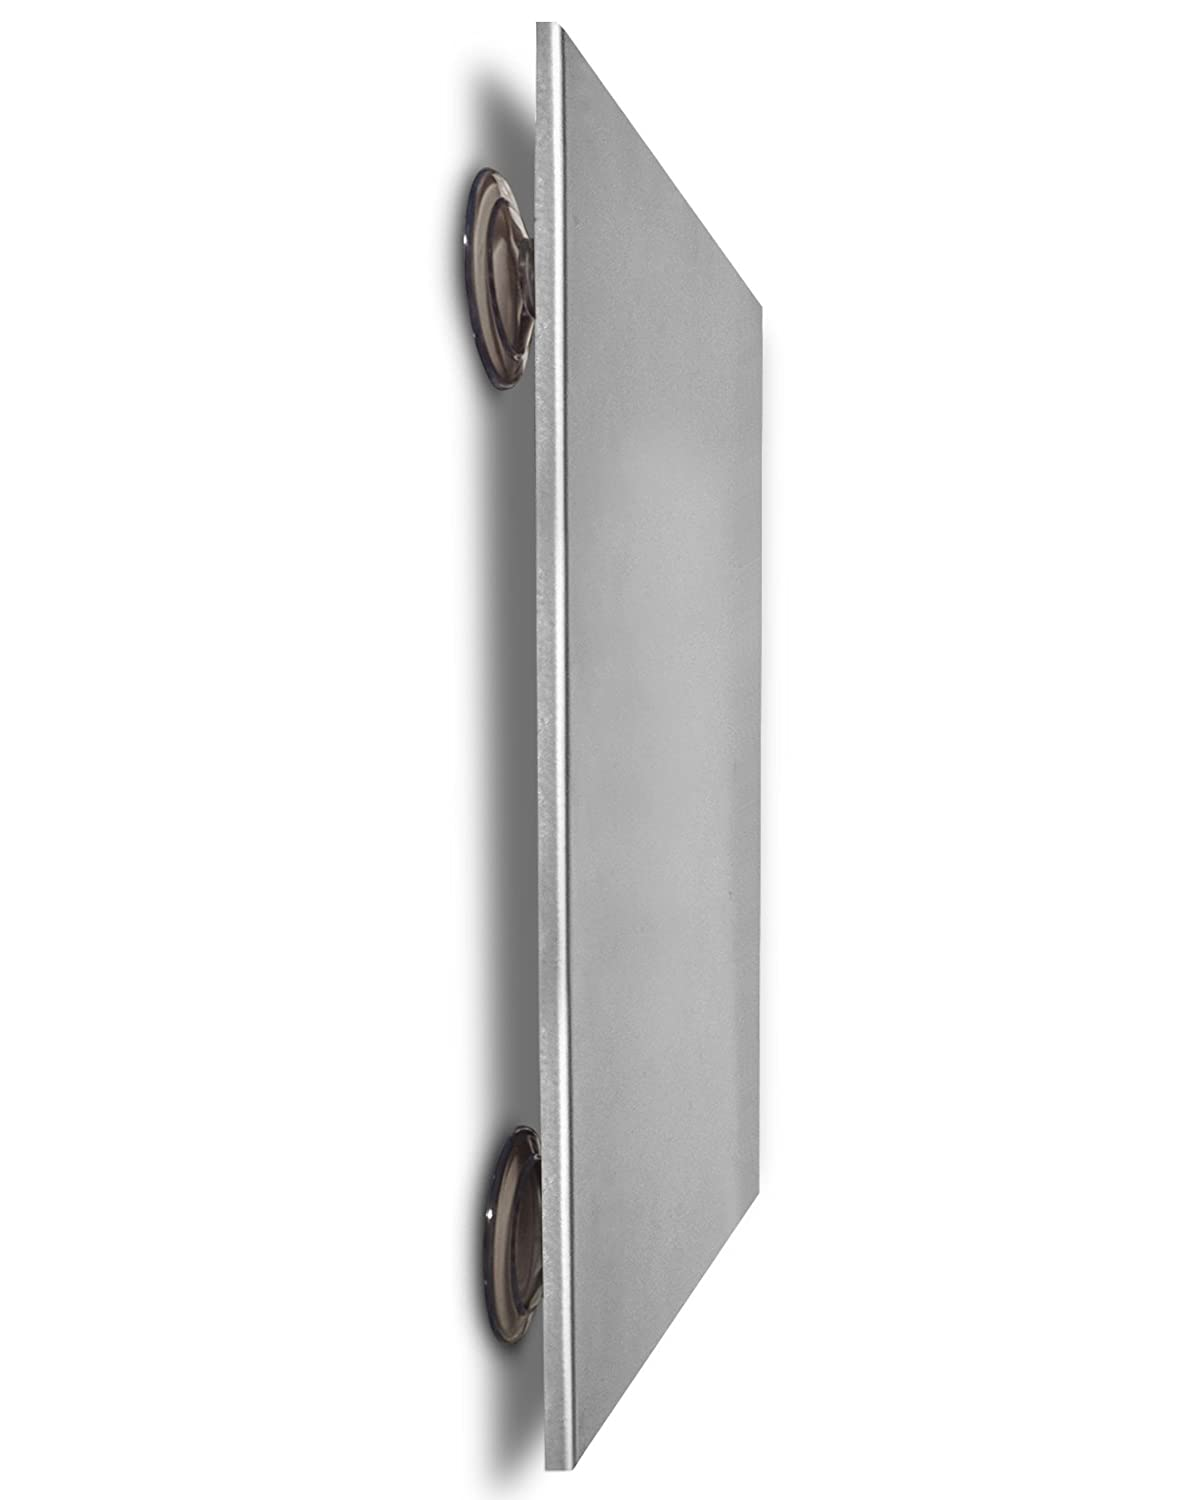 Magnetic Board with Suction Cups - for Stainless Steel Refrigerators! (Arctic Silver, 13.5 x 11.5 inches (Medium))